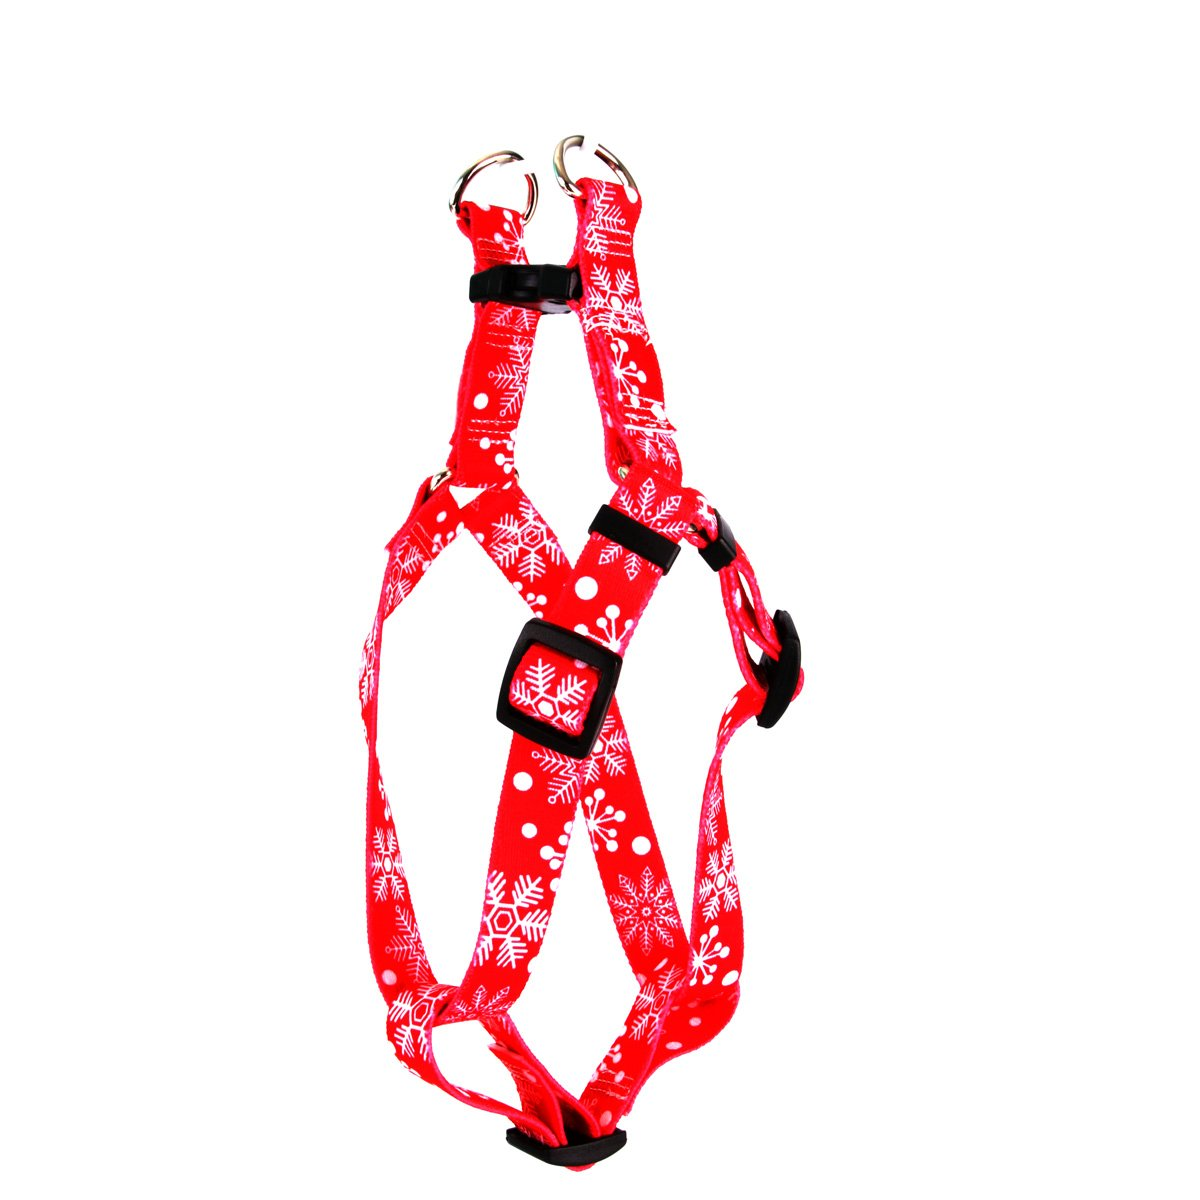 Yellow Dog Design Red Snowflakes Step-in Dog Harness, X-Small-3/8 Wide and fits Chest of 4.5 to 9'' by Yellow Dog Design